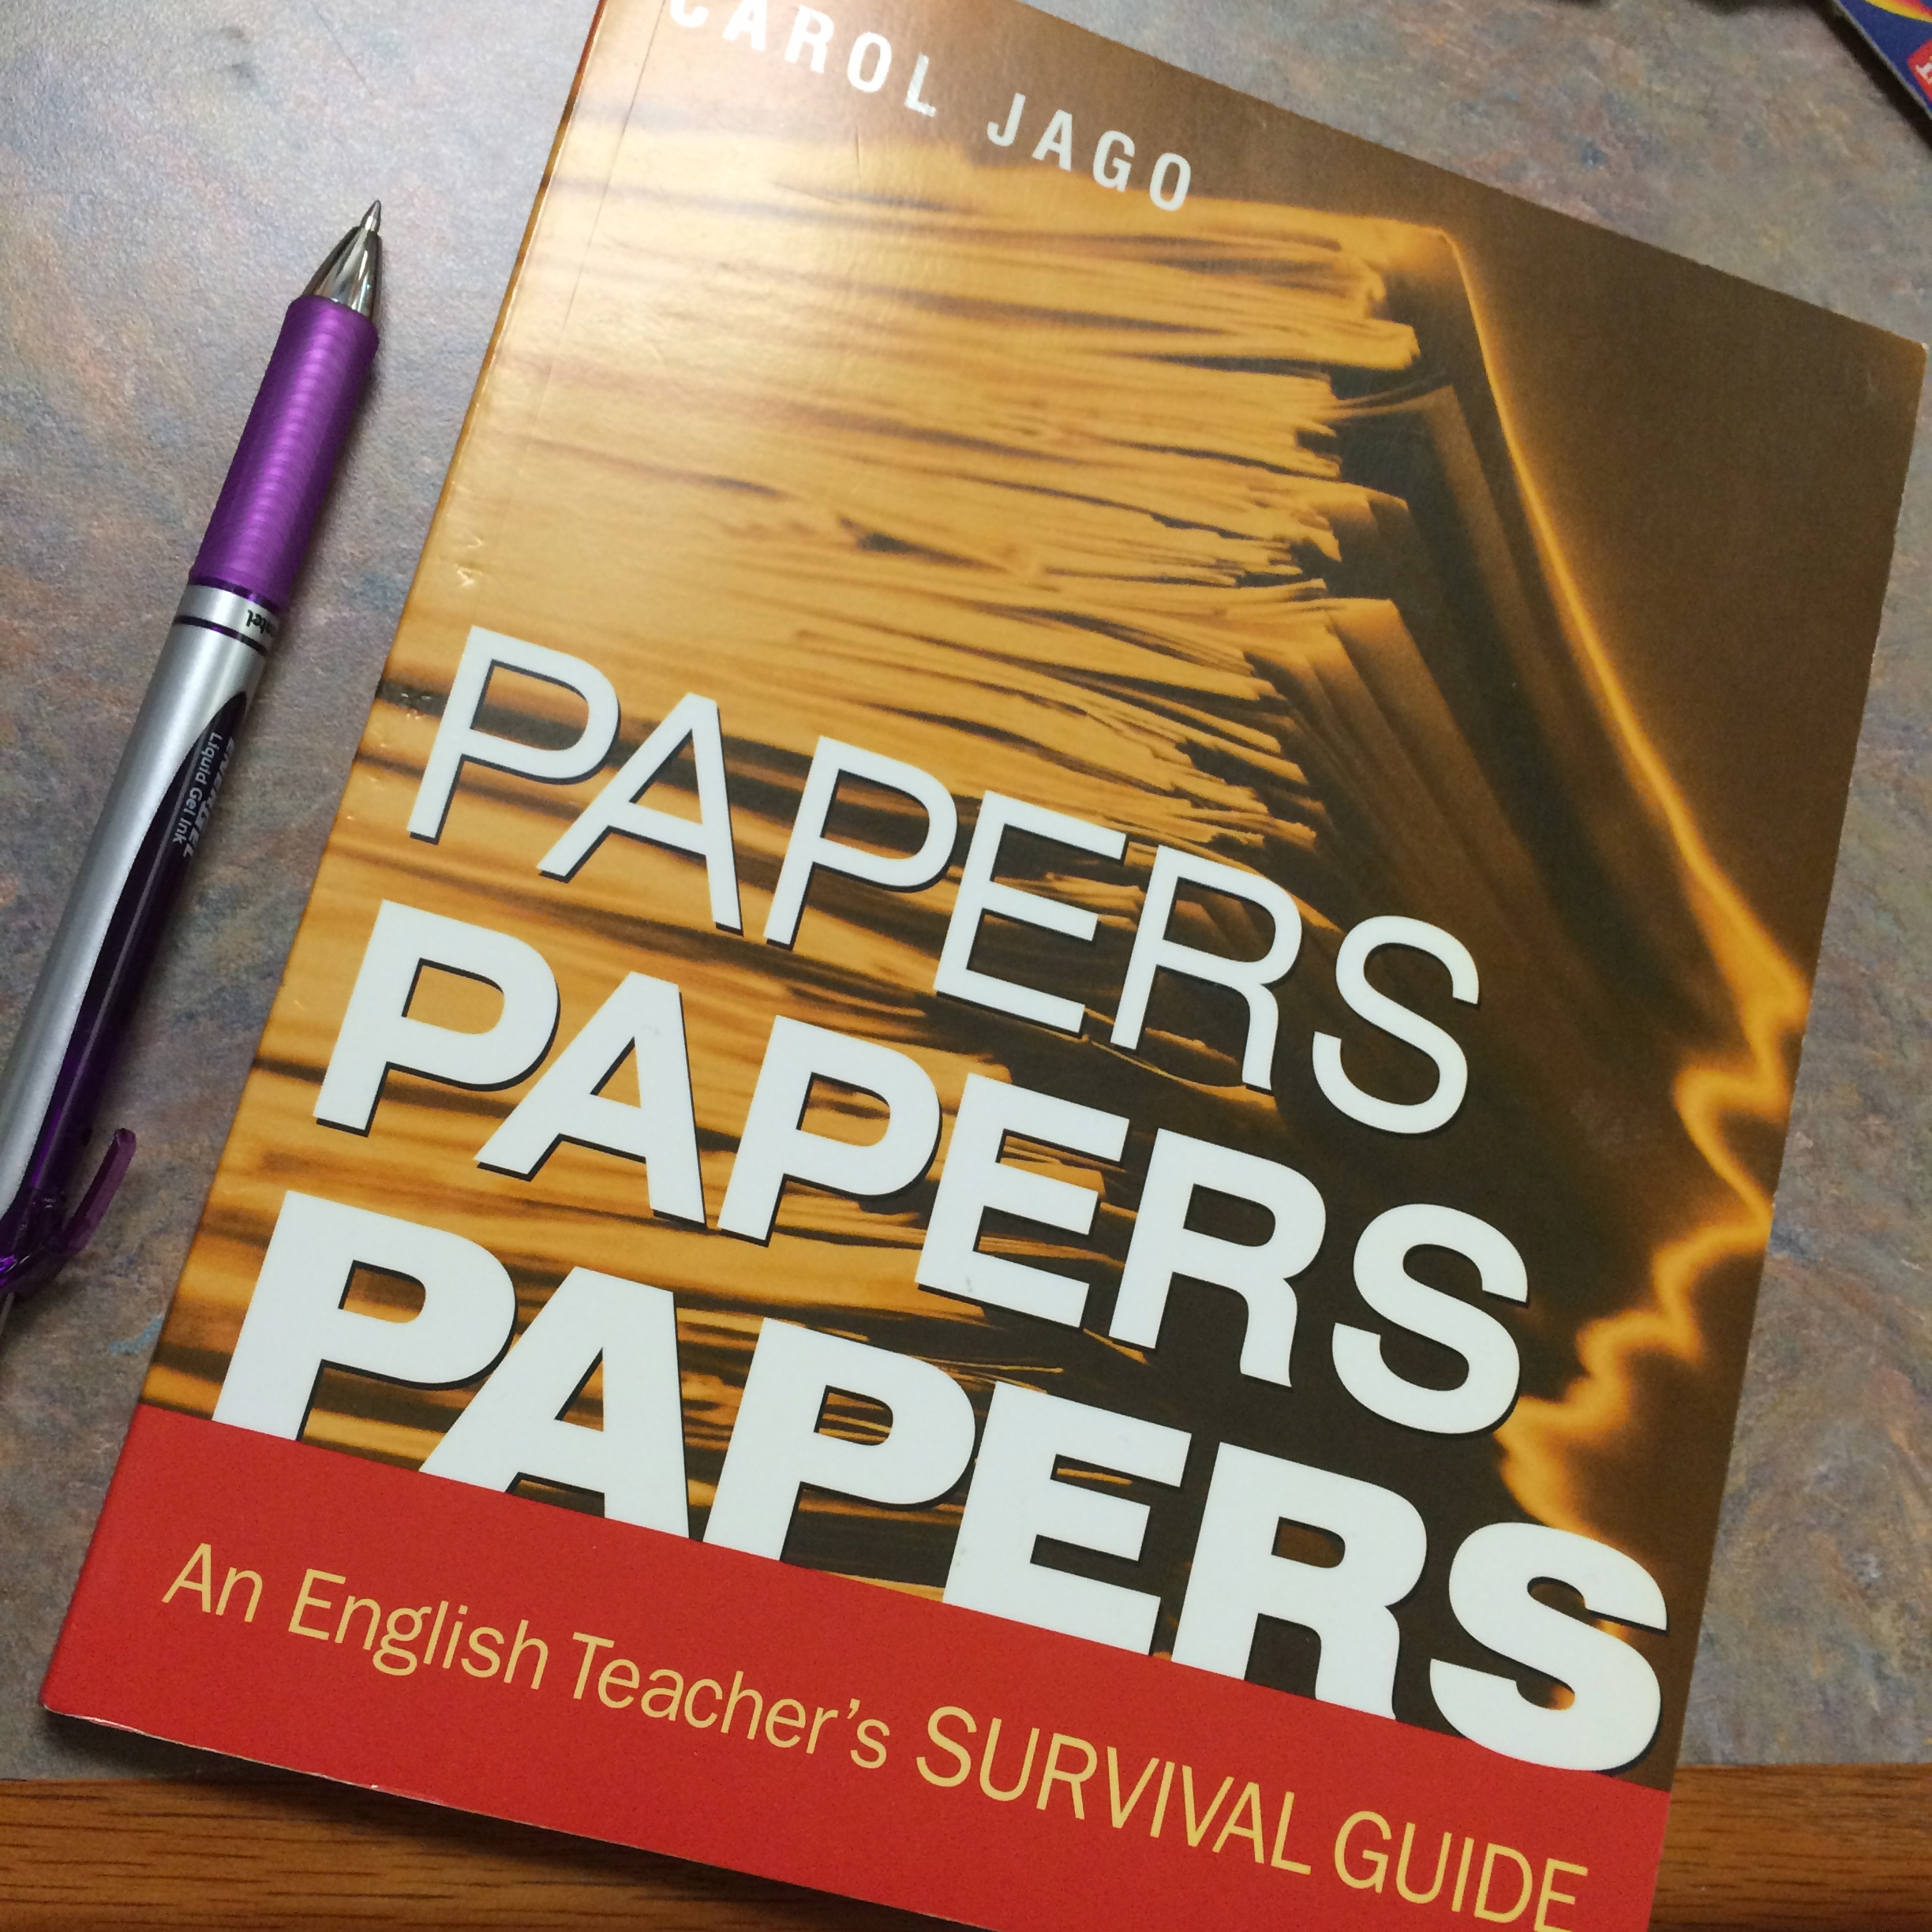 resources for grading essays and giving effective efficient carol jago writes about challenges all english teachers can understand grading giving feedback and